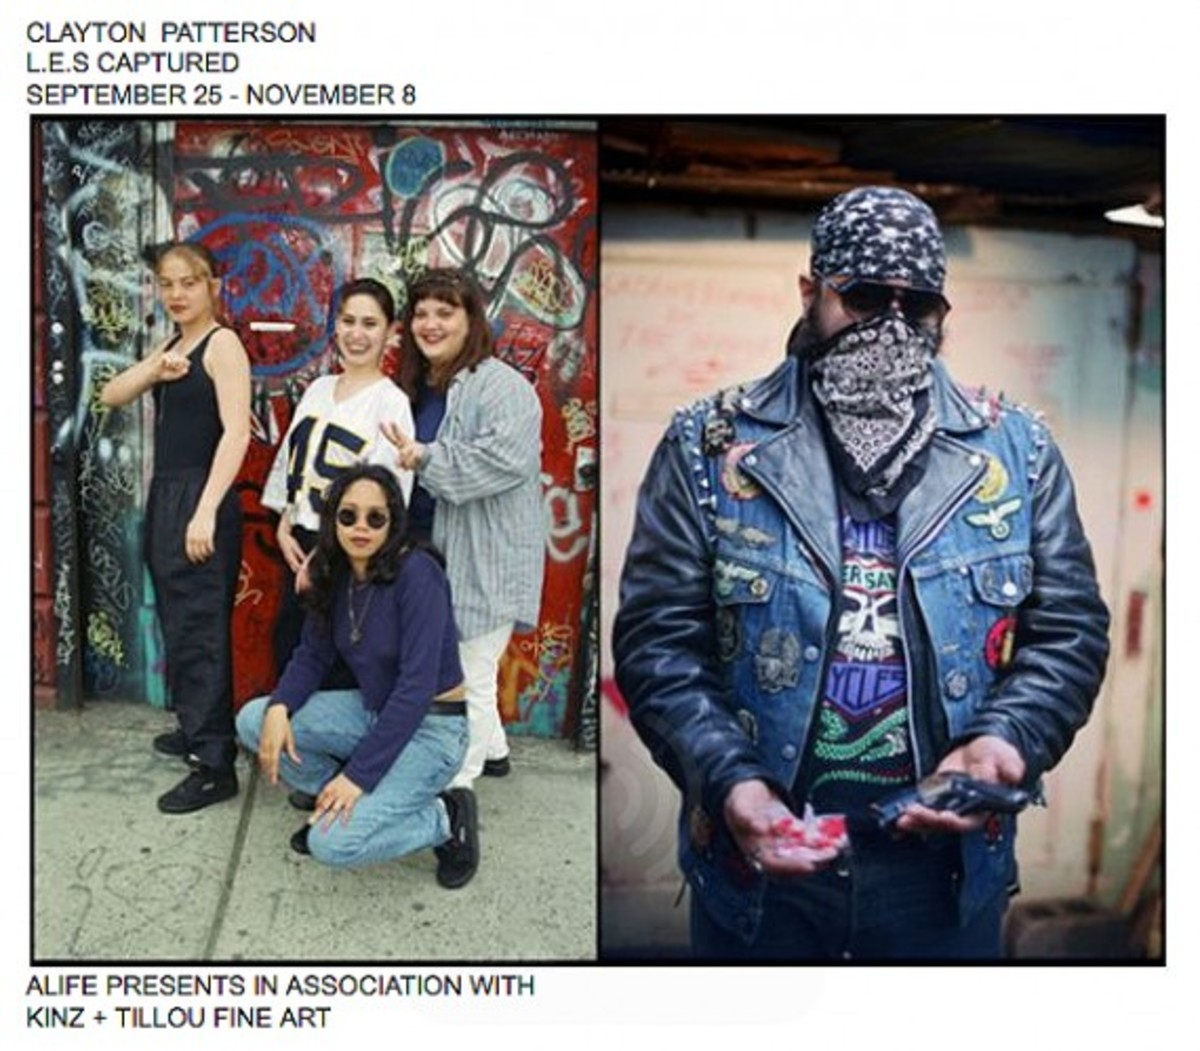 alife-presents-clayton-patterson-exhibit